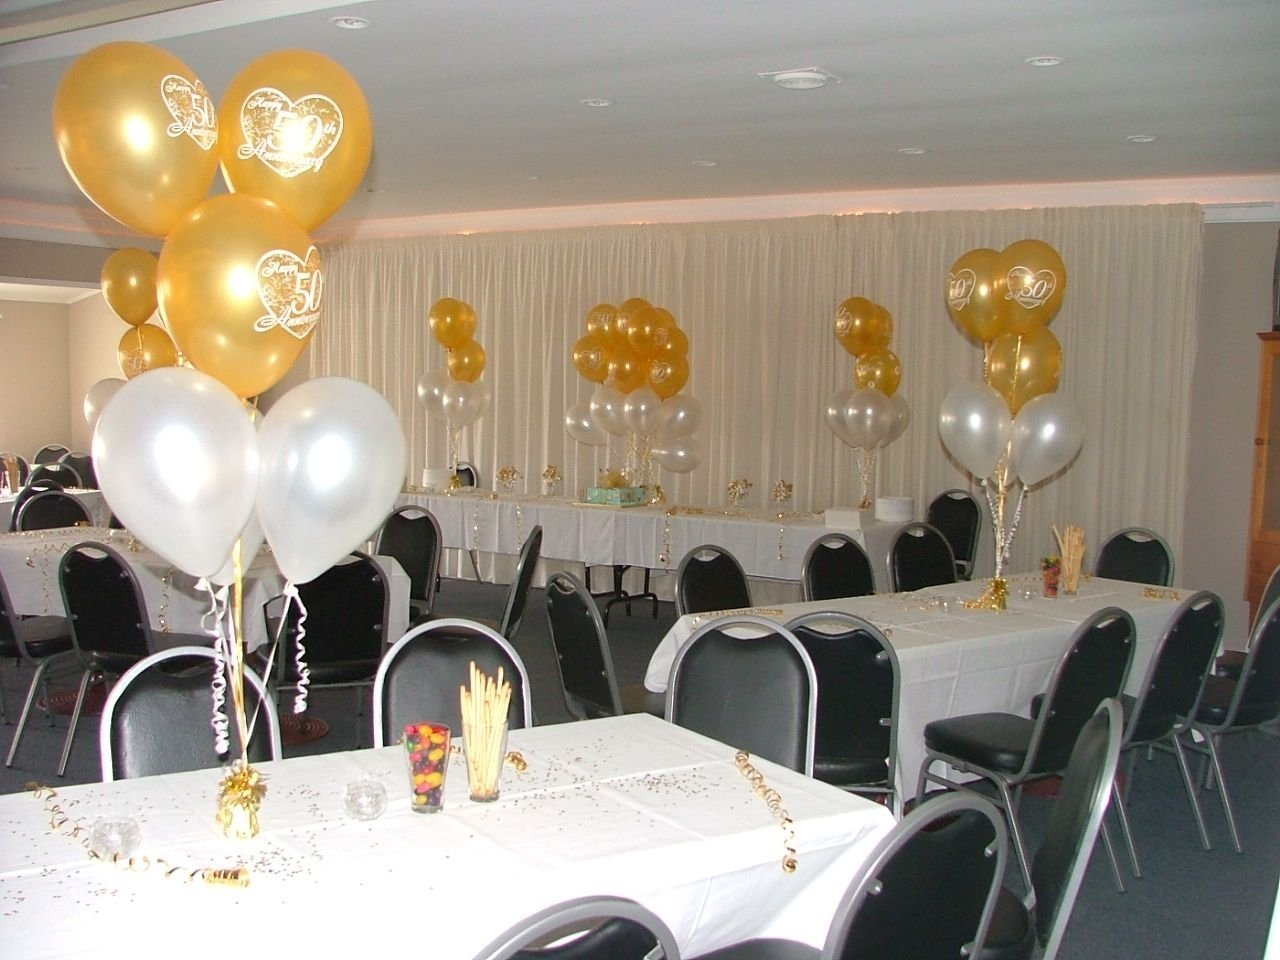 10 Famous Ideas For 50Th Anniversary Party wedding decorations wedding decorations ideas anniversary 3